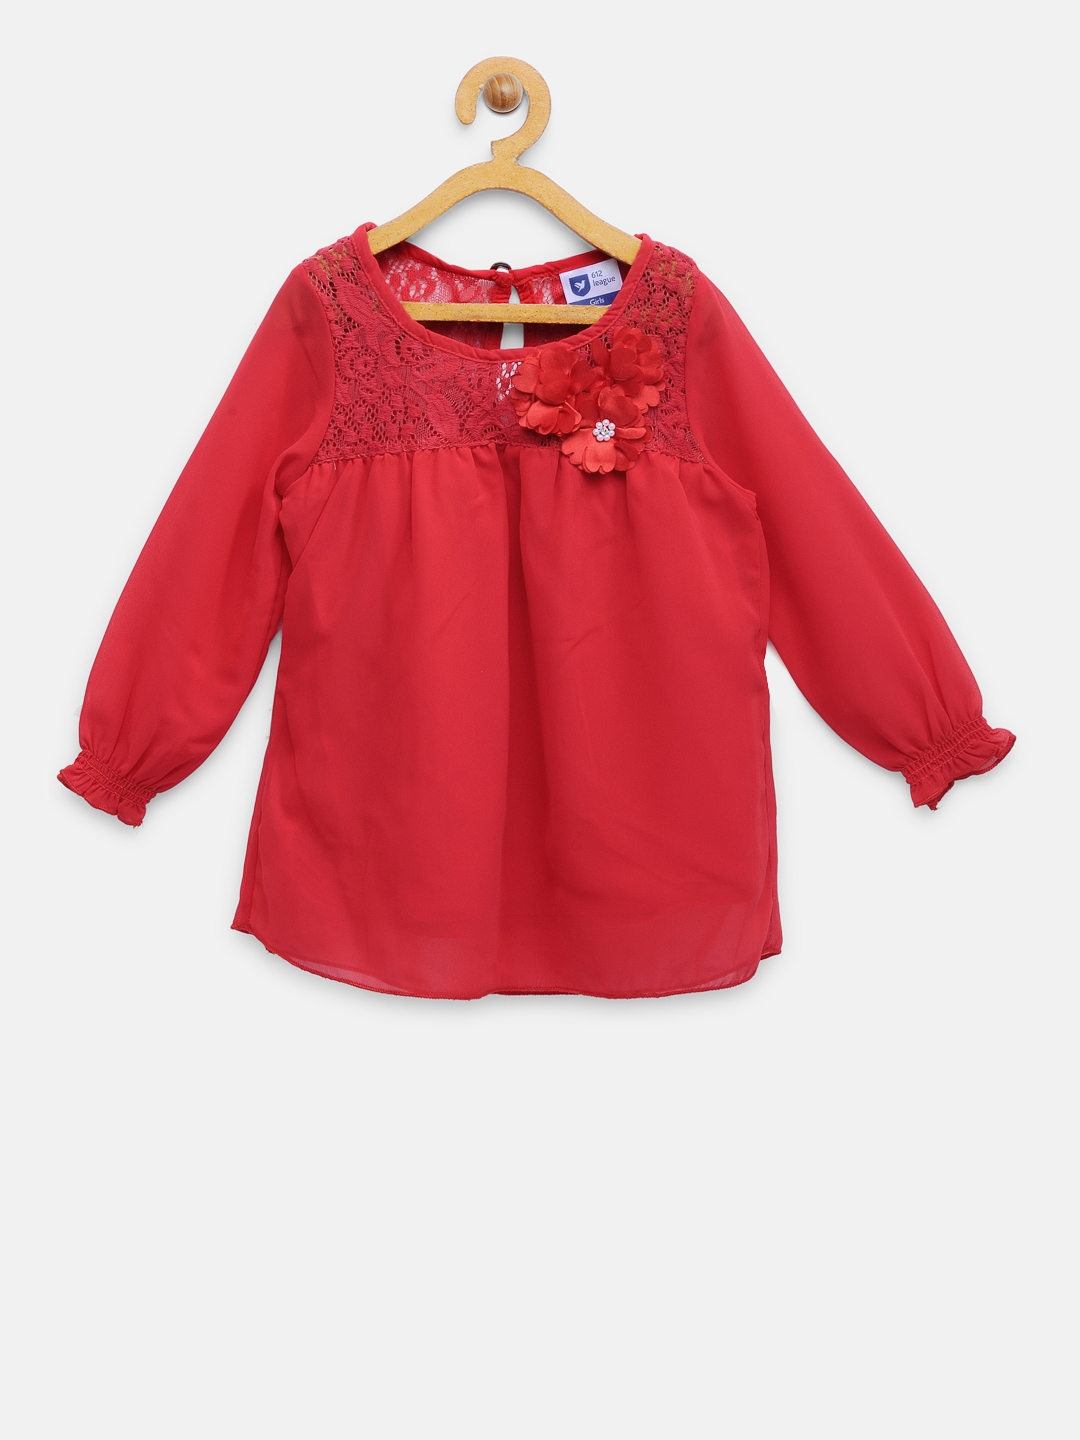 ead24d7e19d1 Buy 612 League Girls Red Solid Top - Tops for Girls 2187460